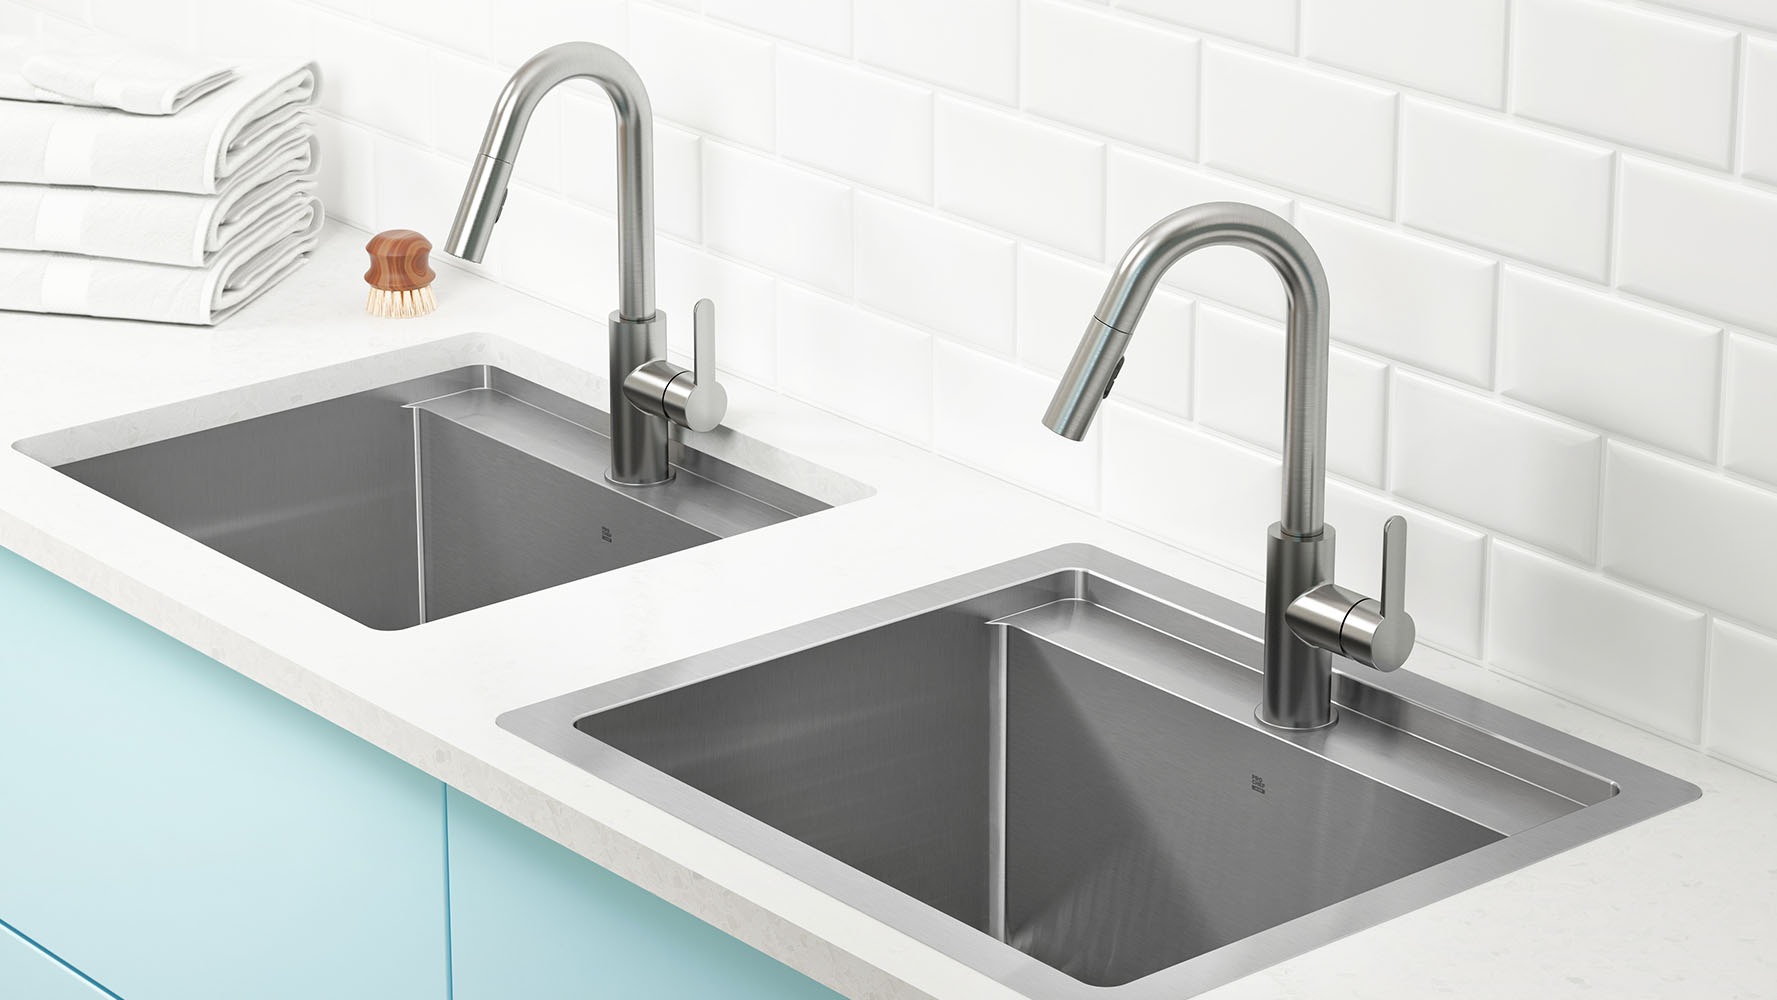 stainless steel kitchen sinks and fireclay sinks  prochef - new dualmount utility sink